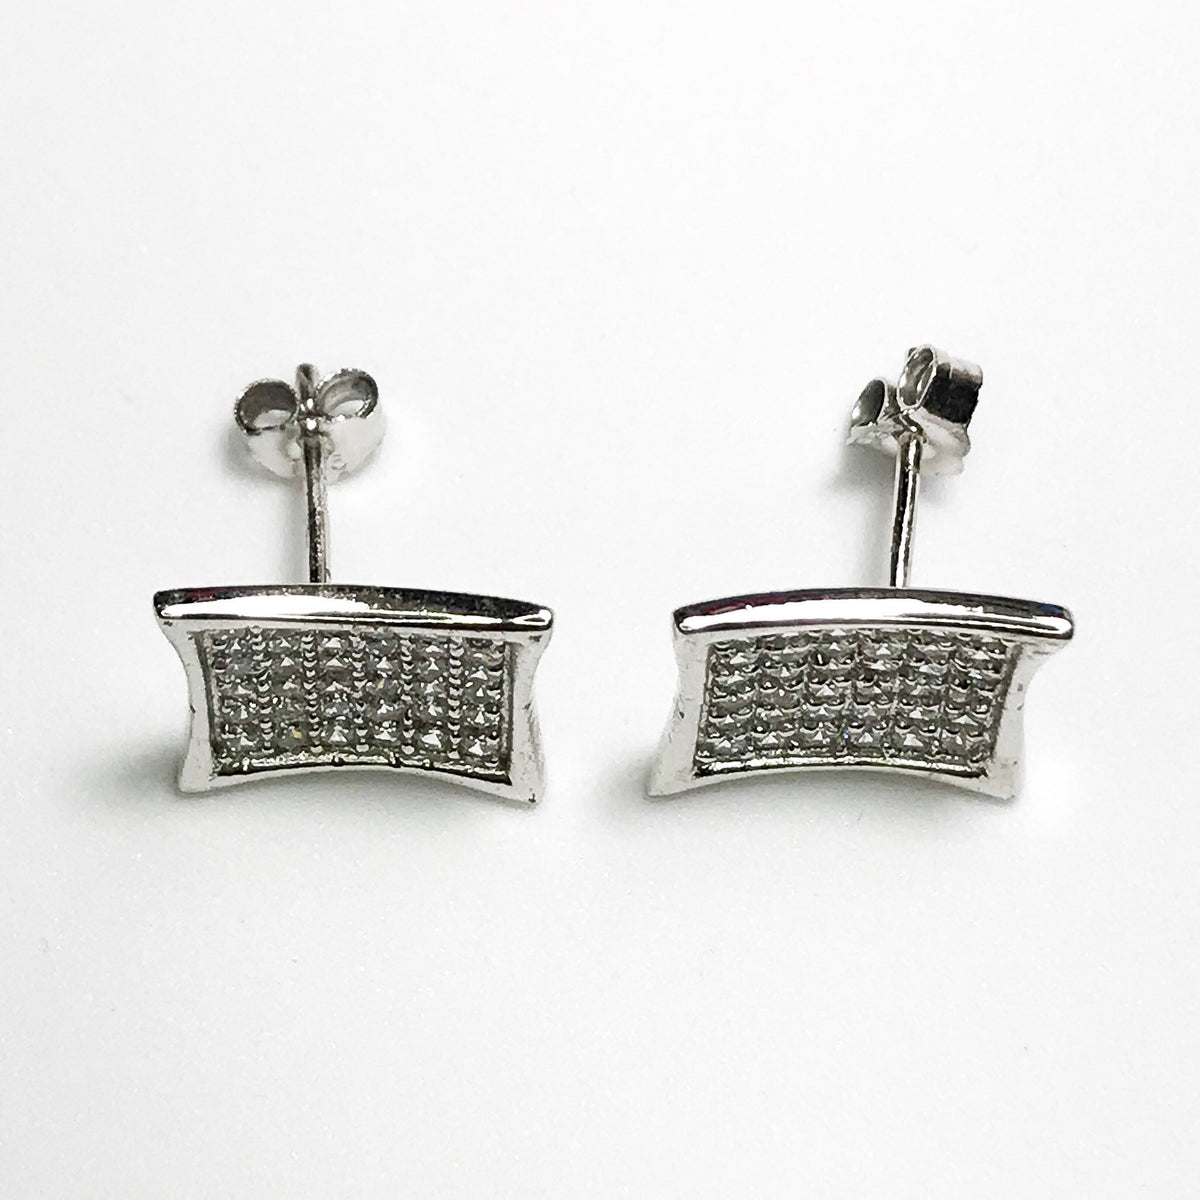 NEW 925 Sterling Silver Smaller Curved Square with Stones Stud Earrings